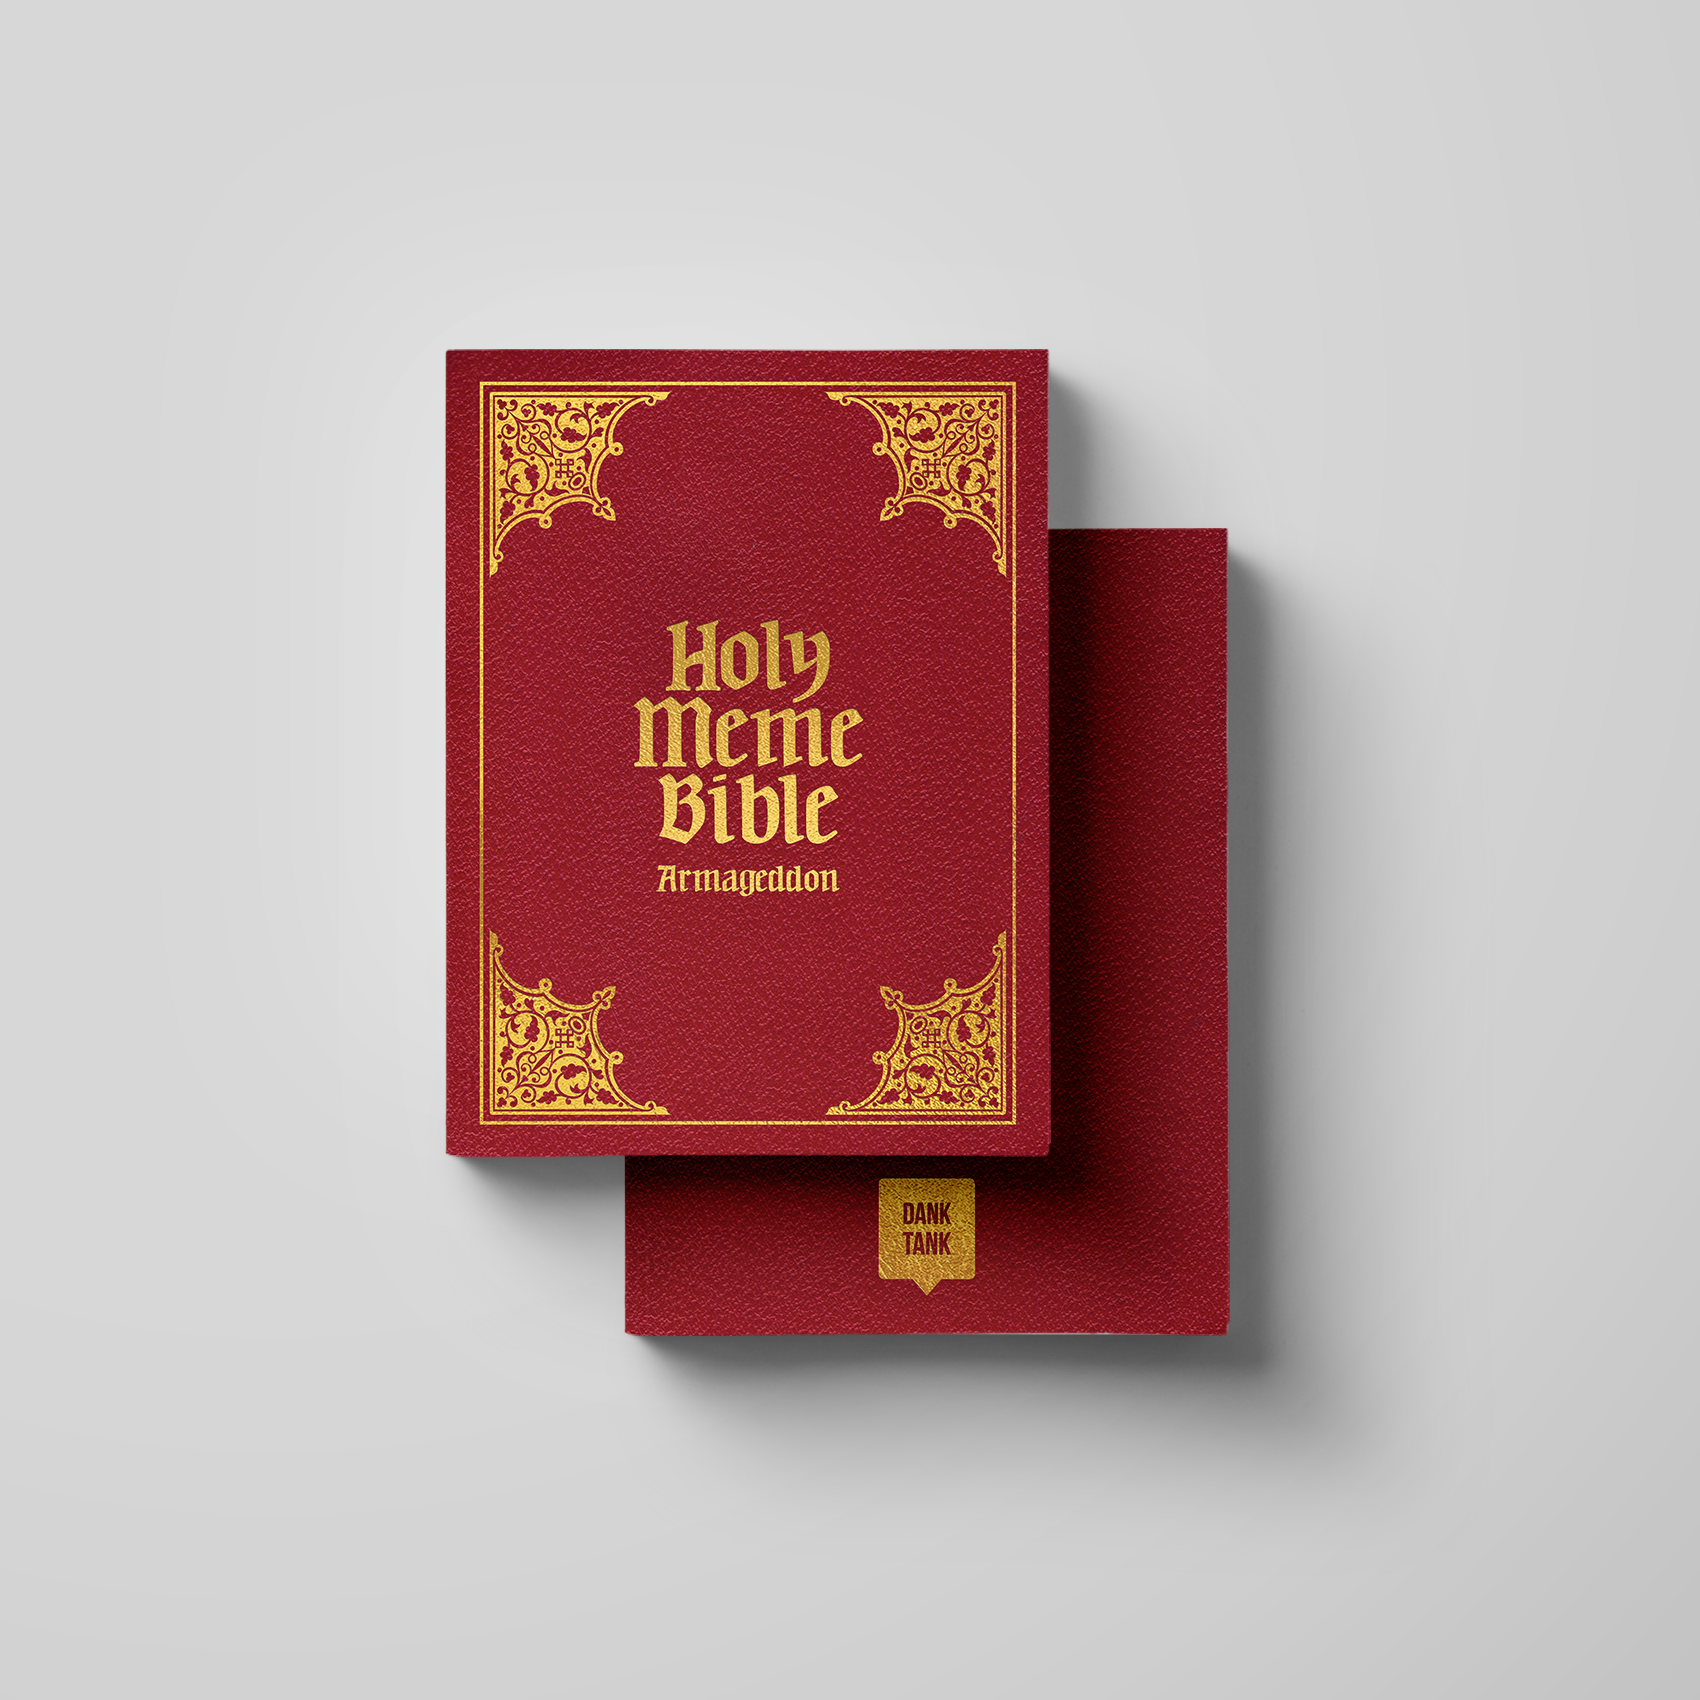 Holy Méme Bible: Armageddon (2020)